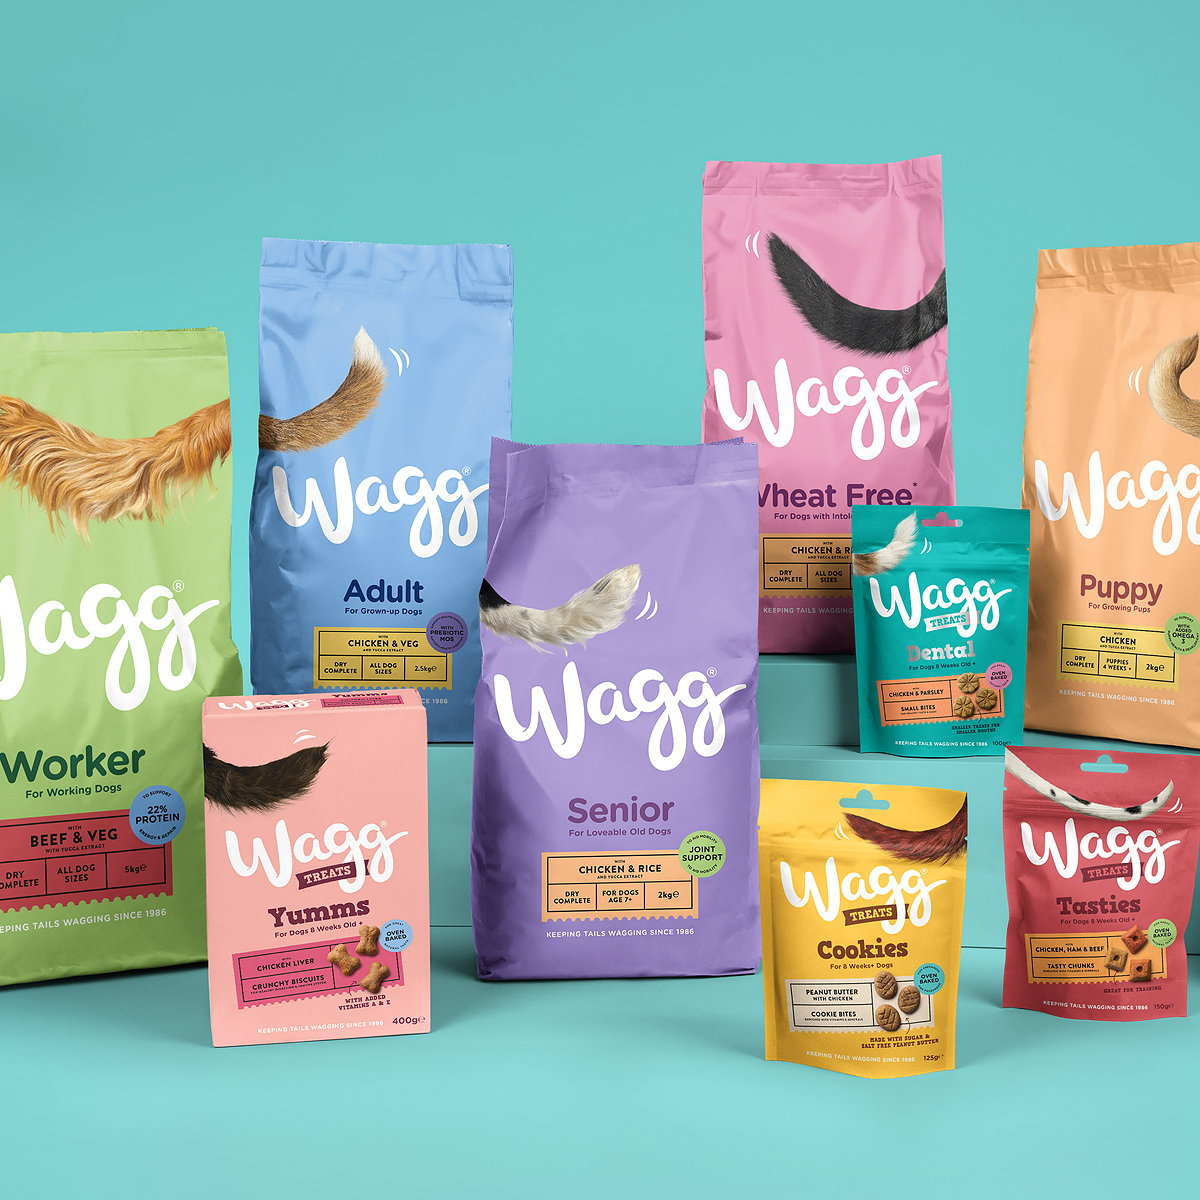 Robot Food Brings Wagg Pet Food Back to Life with Rebrand